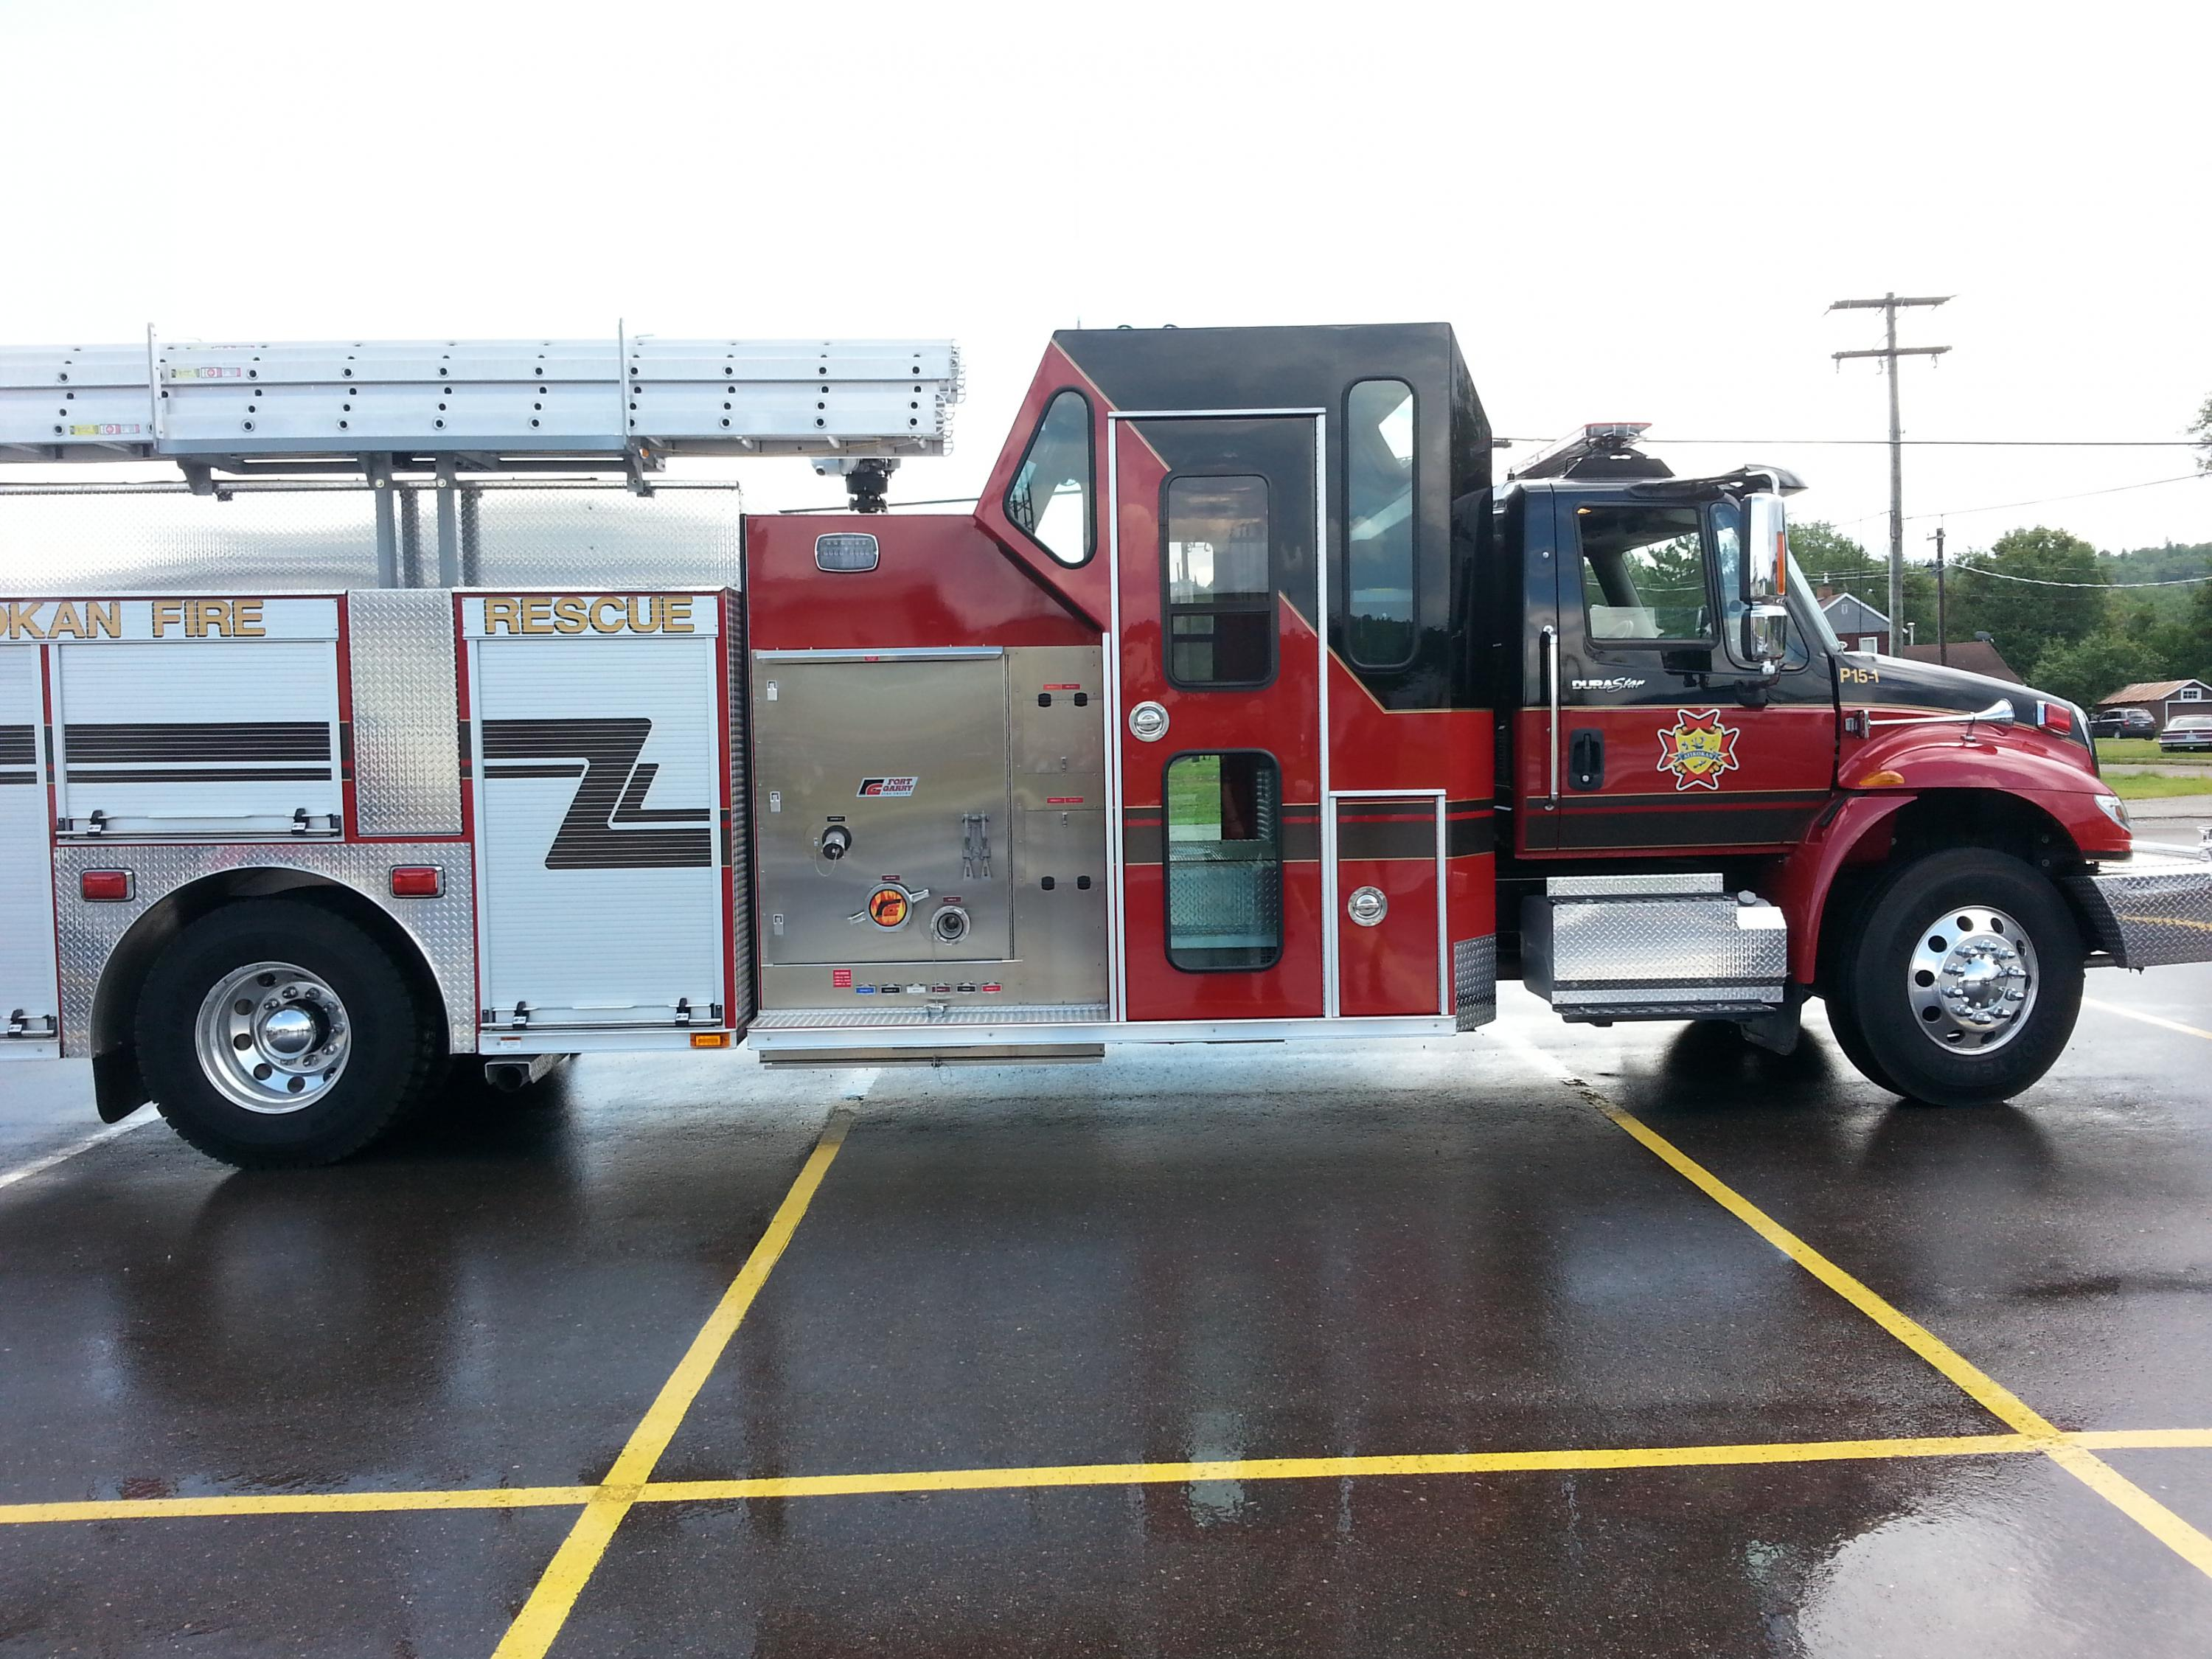 sideview of new firetruck